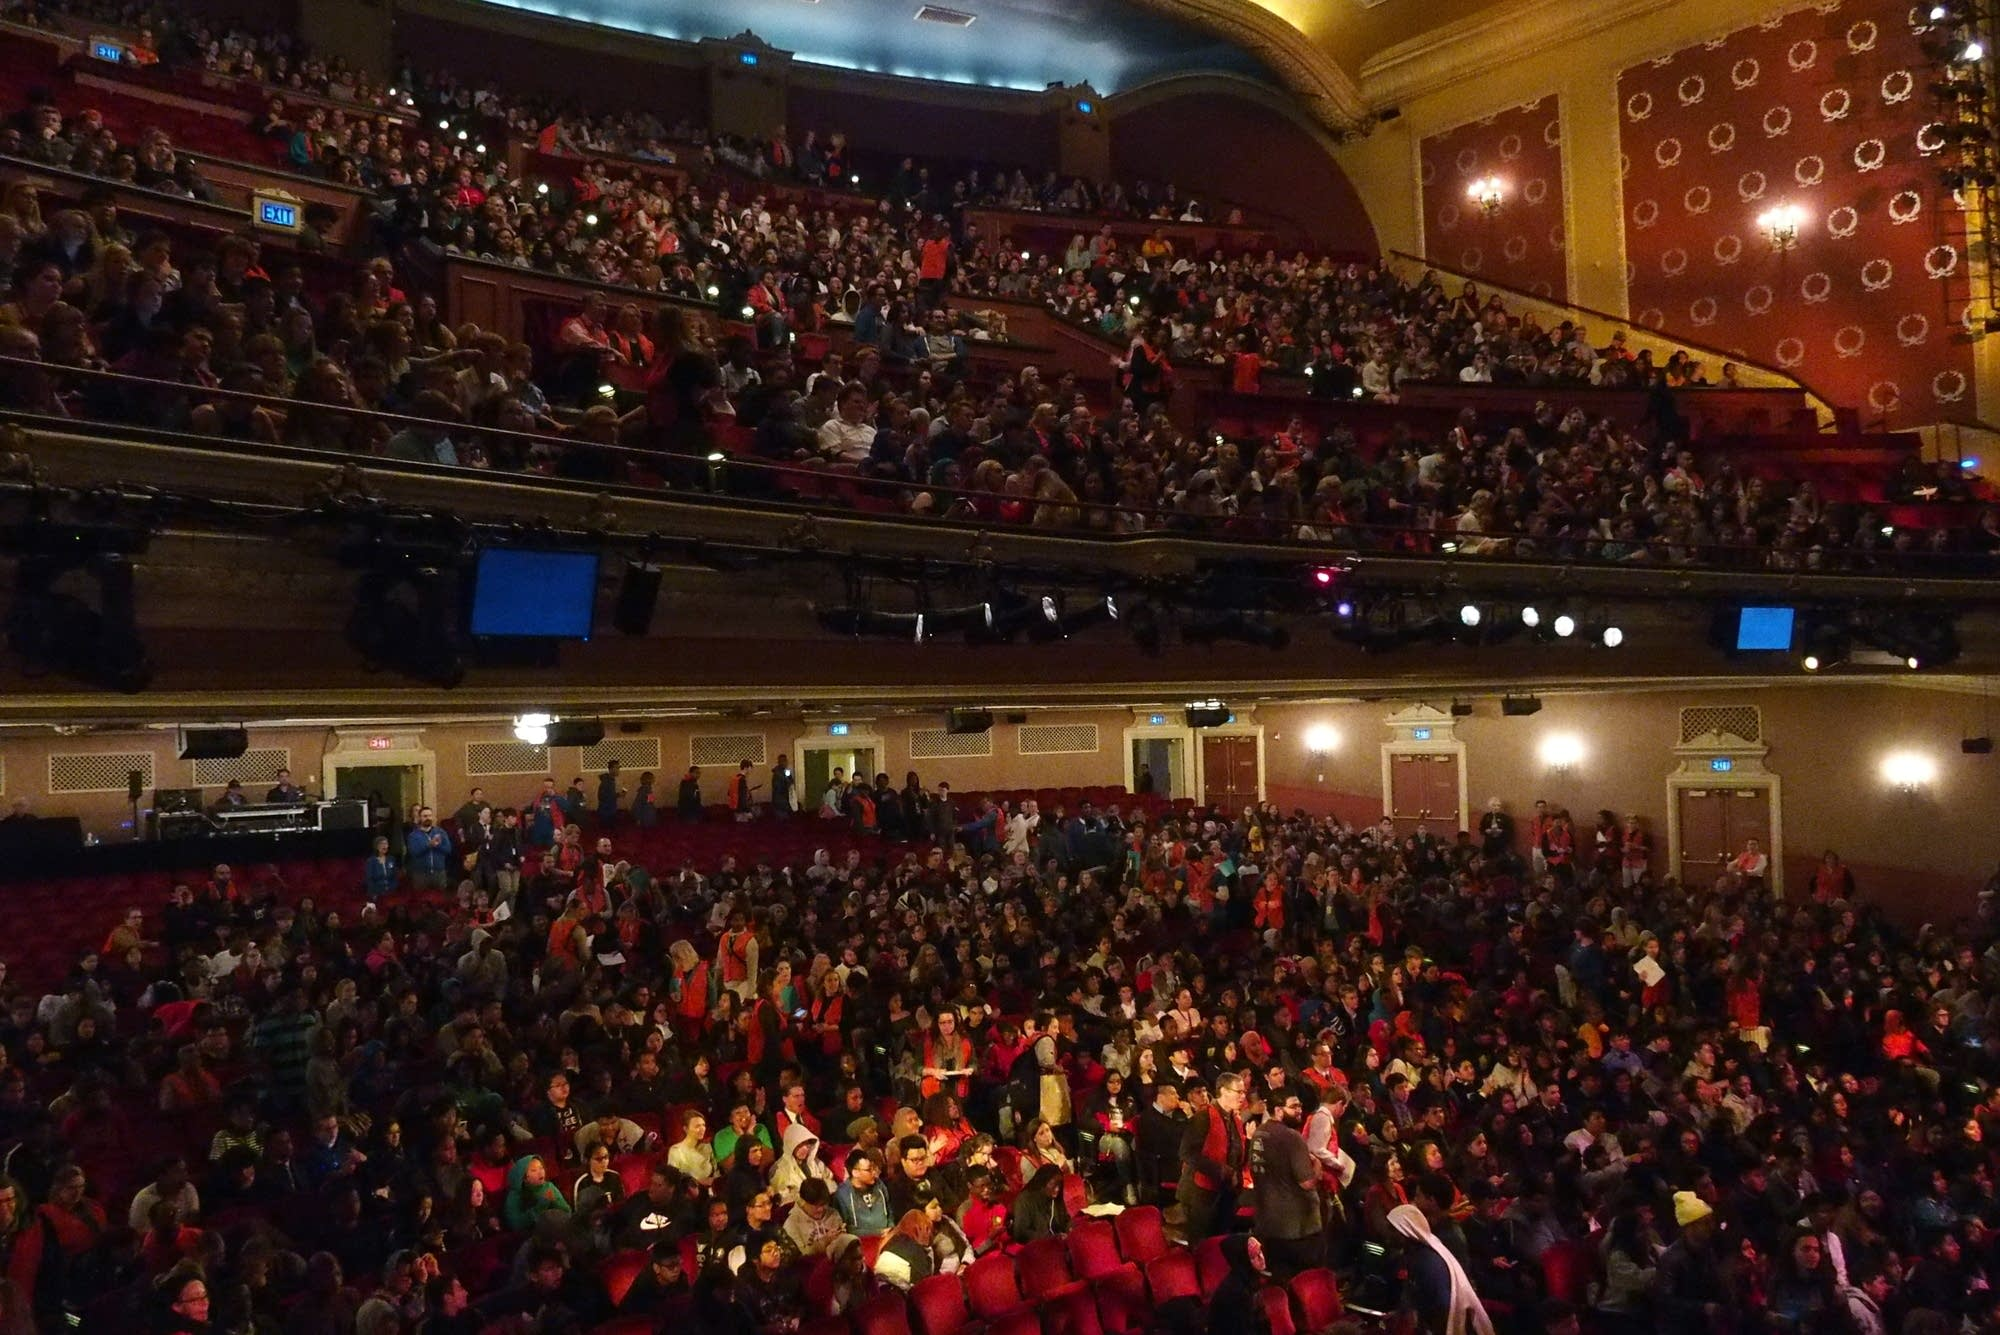 The historic Orpheum Theatre in Minneapolis was close to capacity